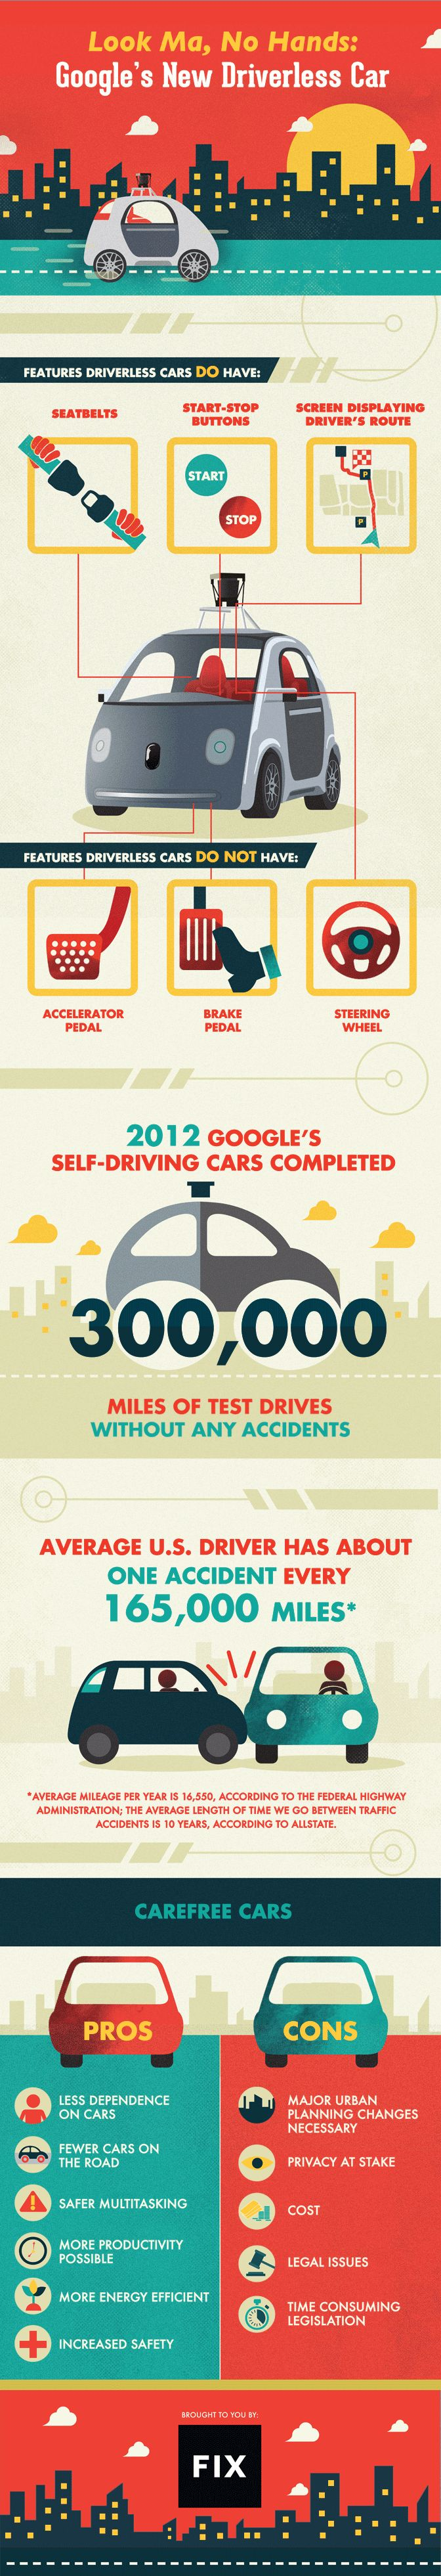 Google s new driverless car will be a revelation for travelers freeing up time to read